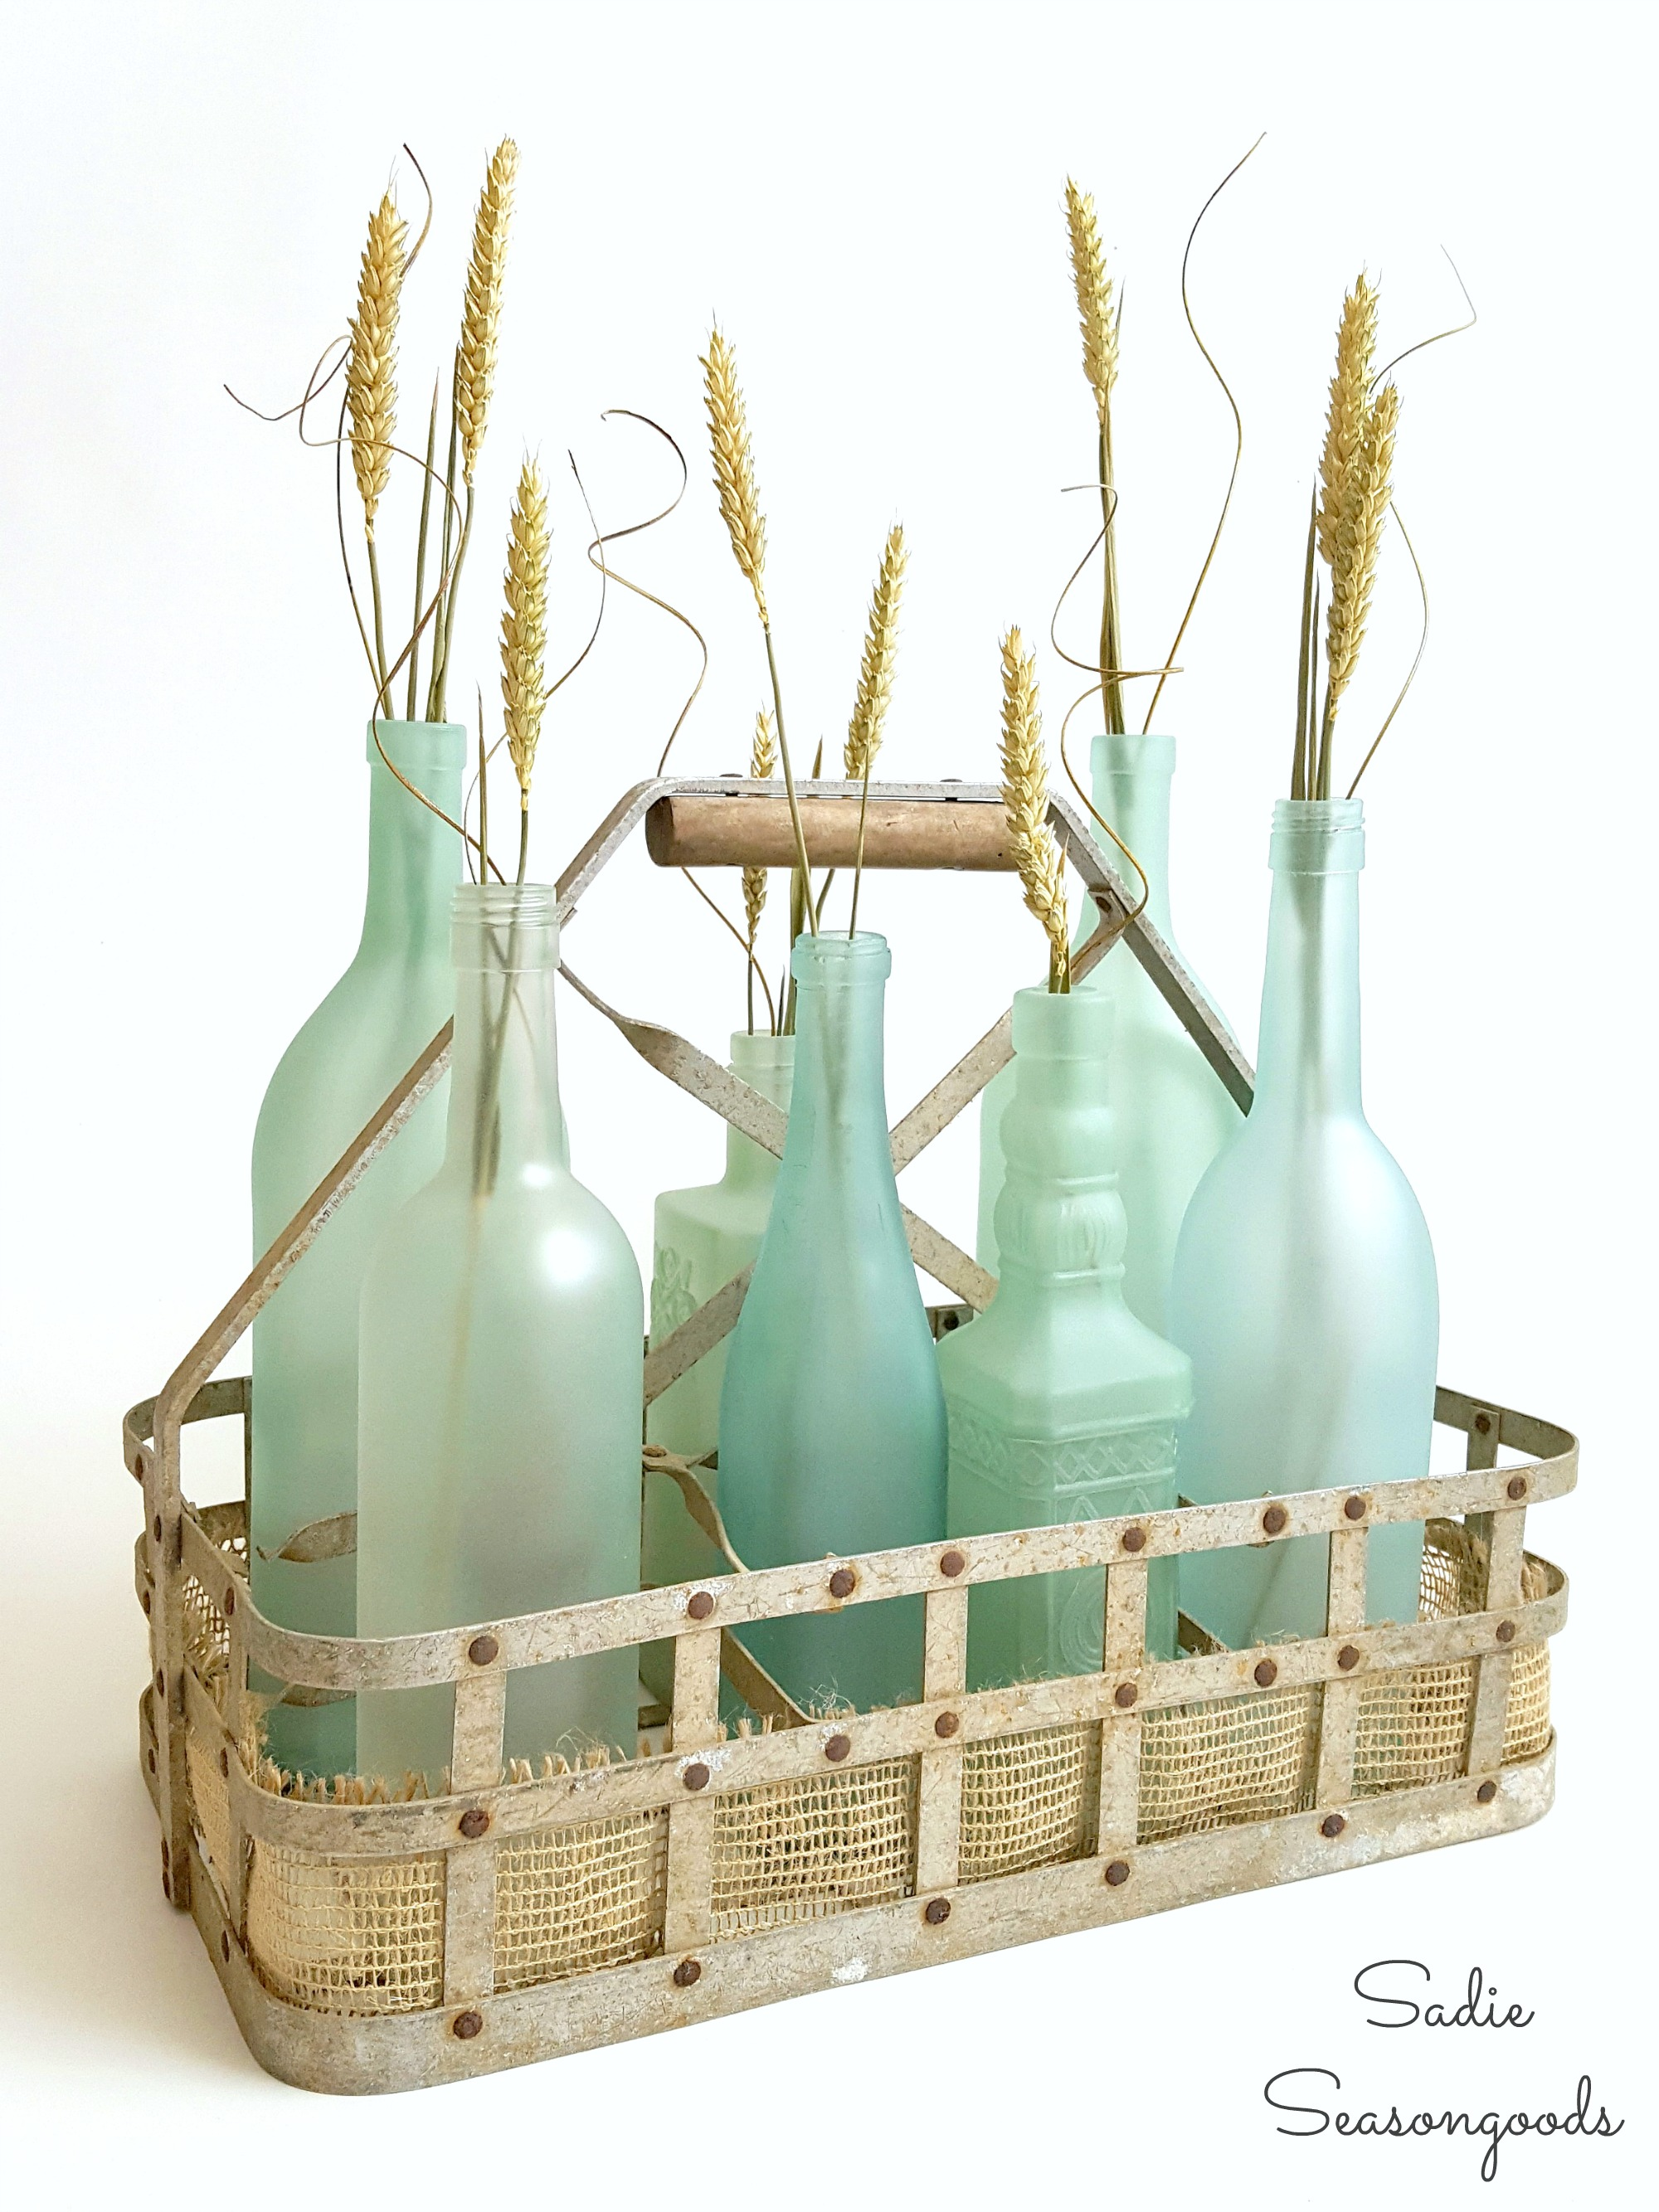 How to make sea glass bottles for beach cottage decor by recycling wine bottles by Sadie Seasongoods